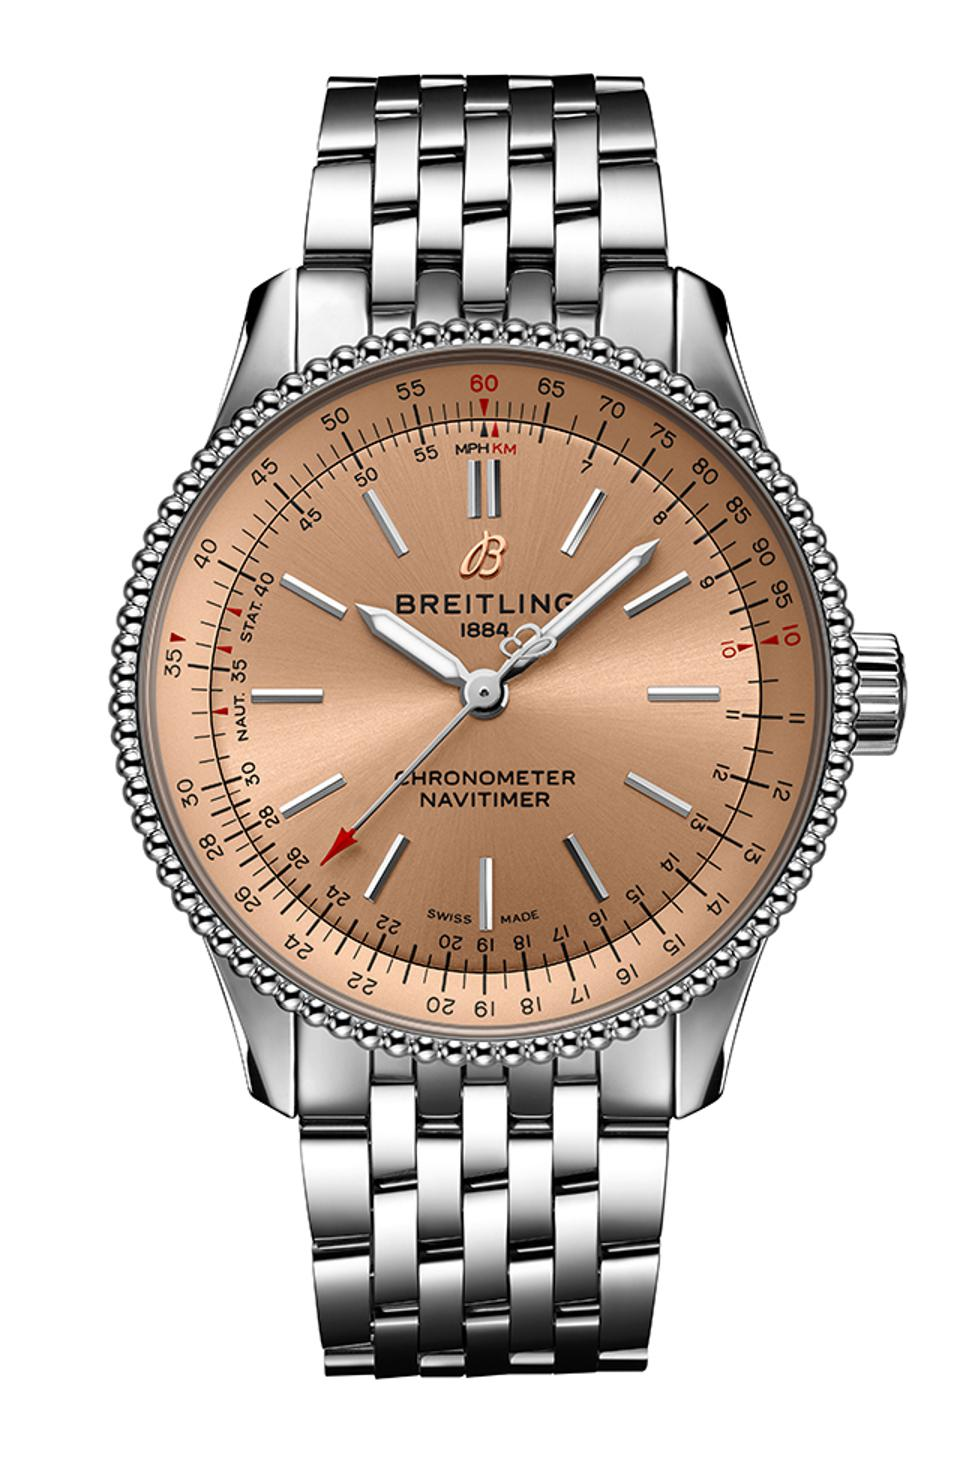 The Breitling Navitimer Automatic 35.